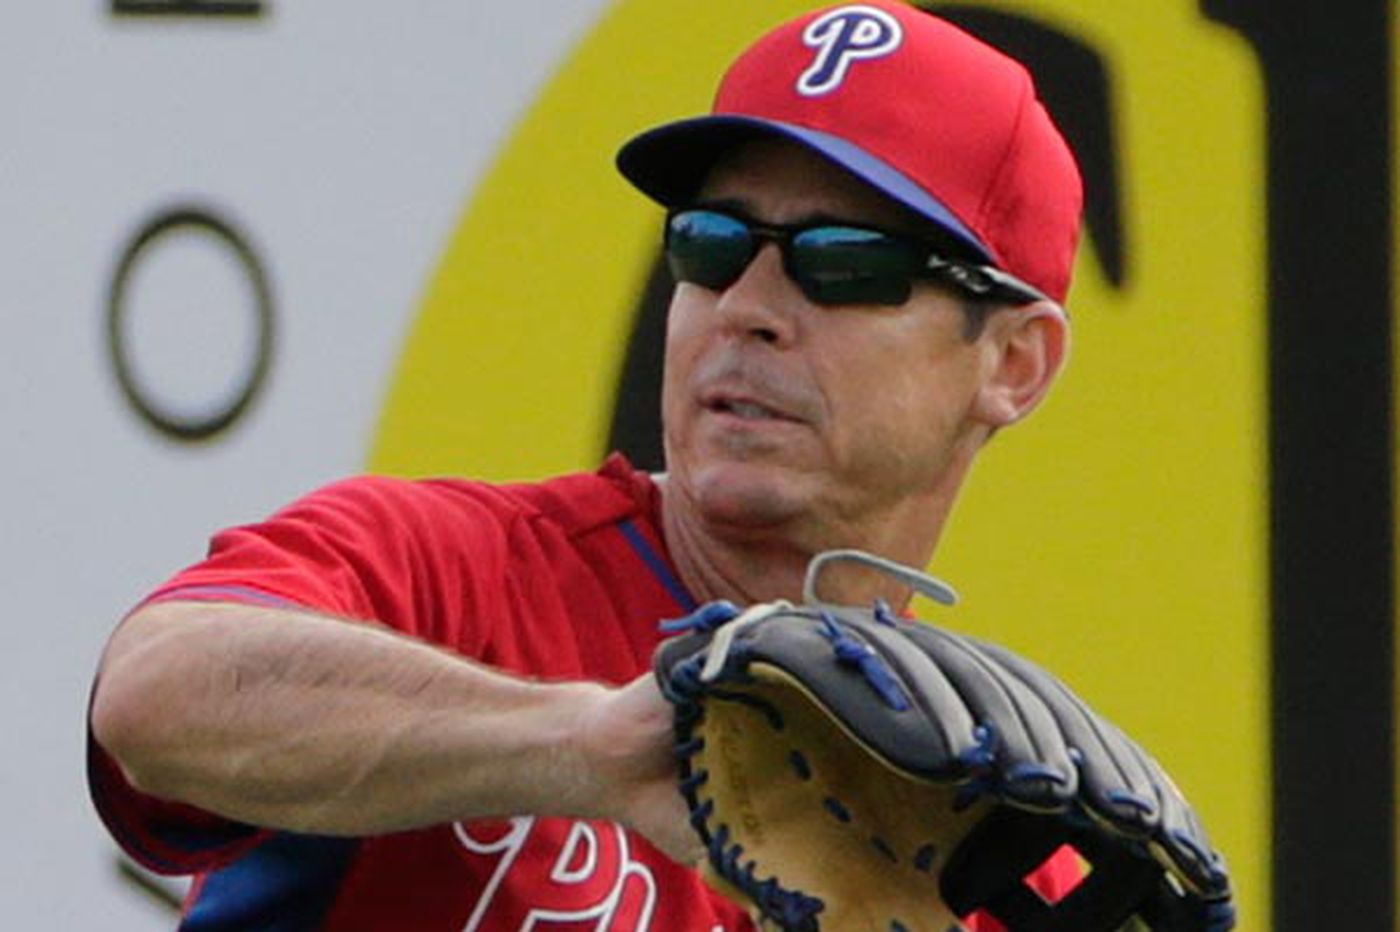 Billy Bean brings inclusion message to Phillies camp